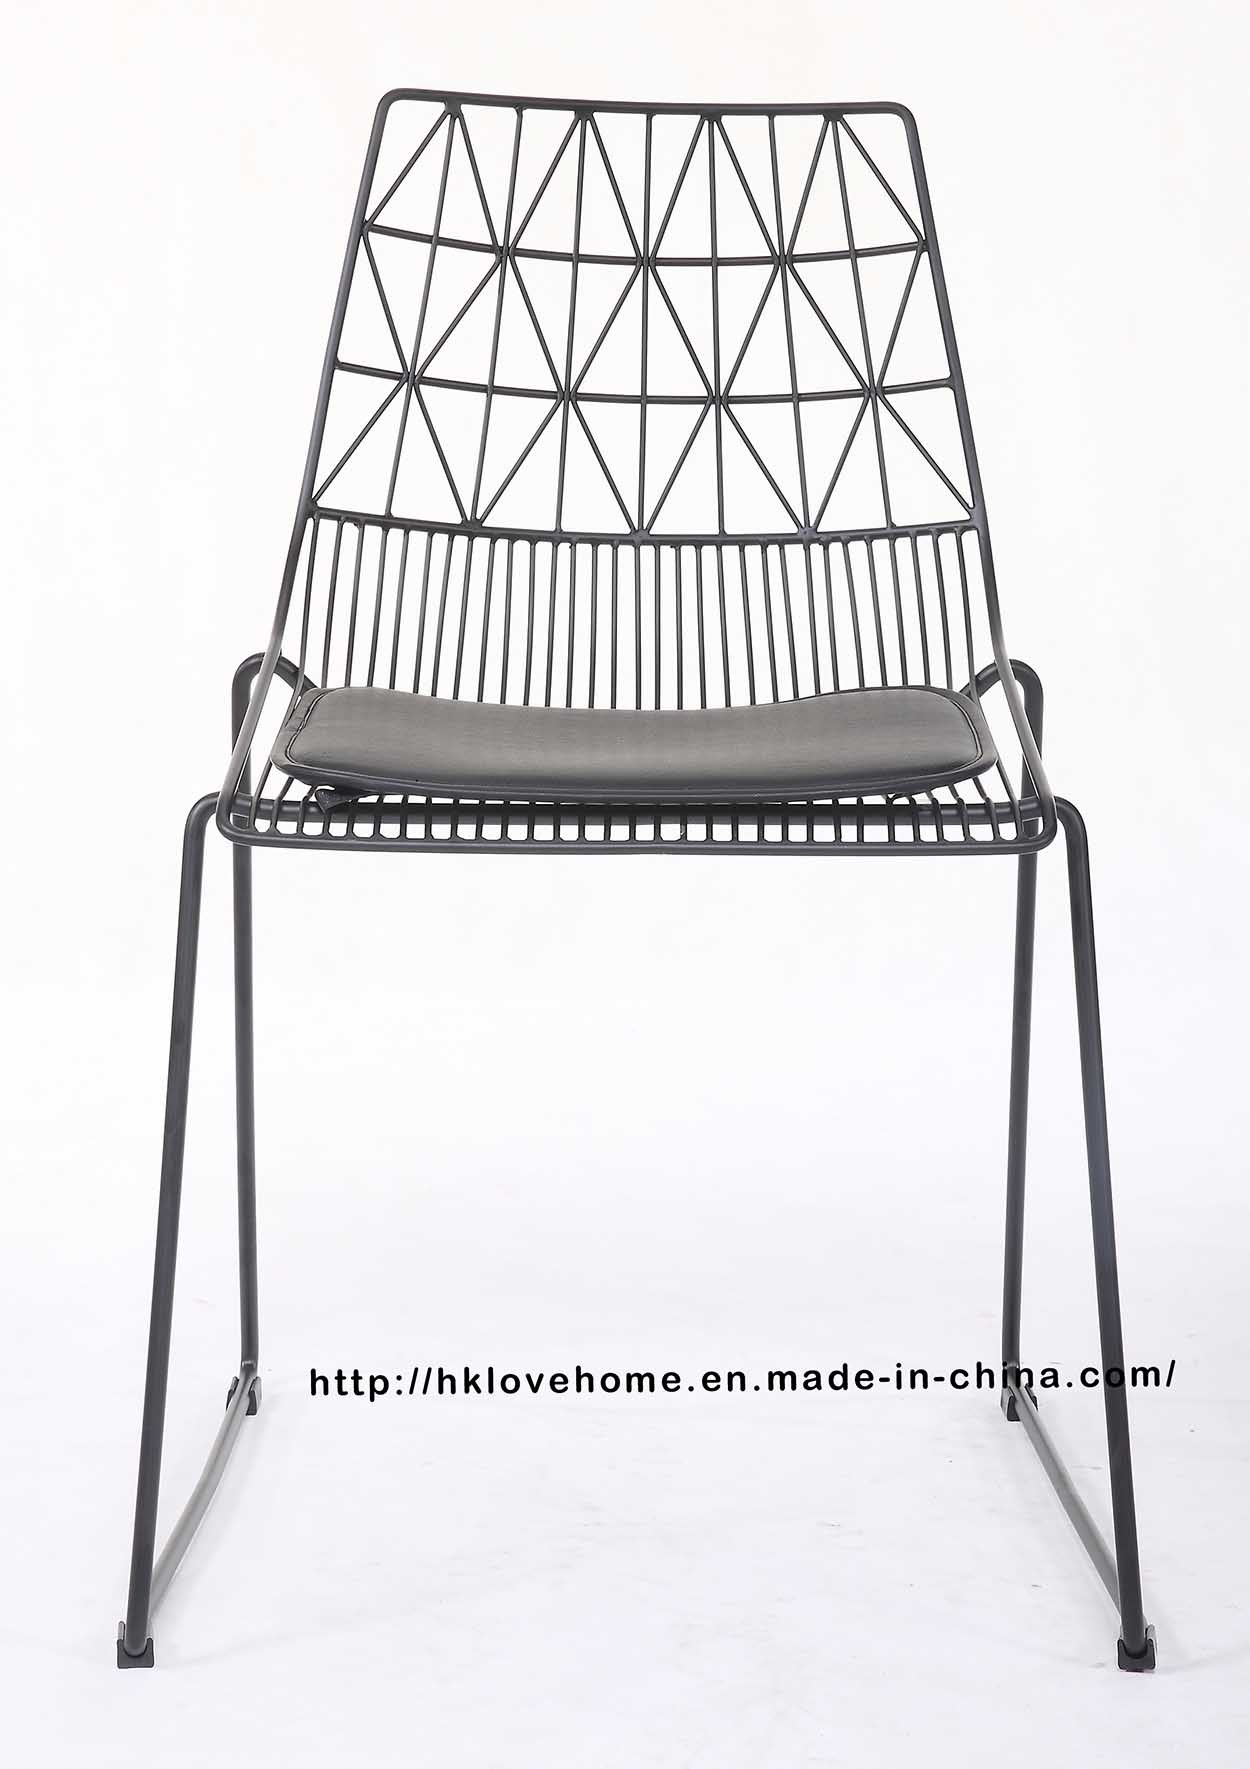 Surprising Hot Item Modern Restaurant Furniture Classic Steel Stackable Bend Side Wire Dining Chair Forskolin Free Trial Chair Design Images Forskolin Free Trialorg